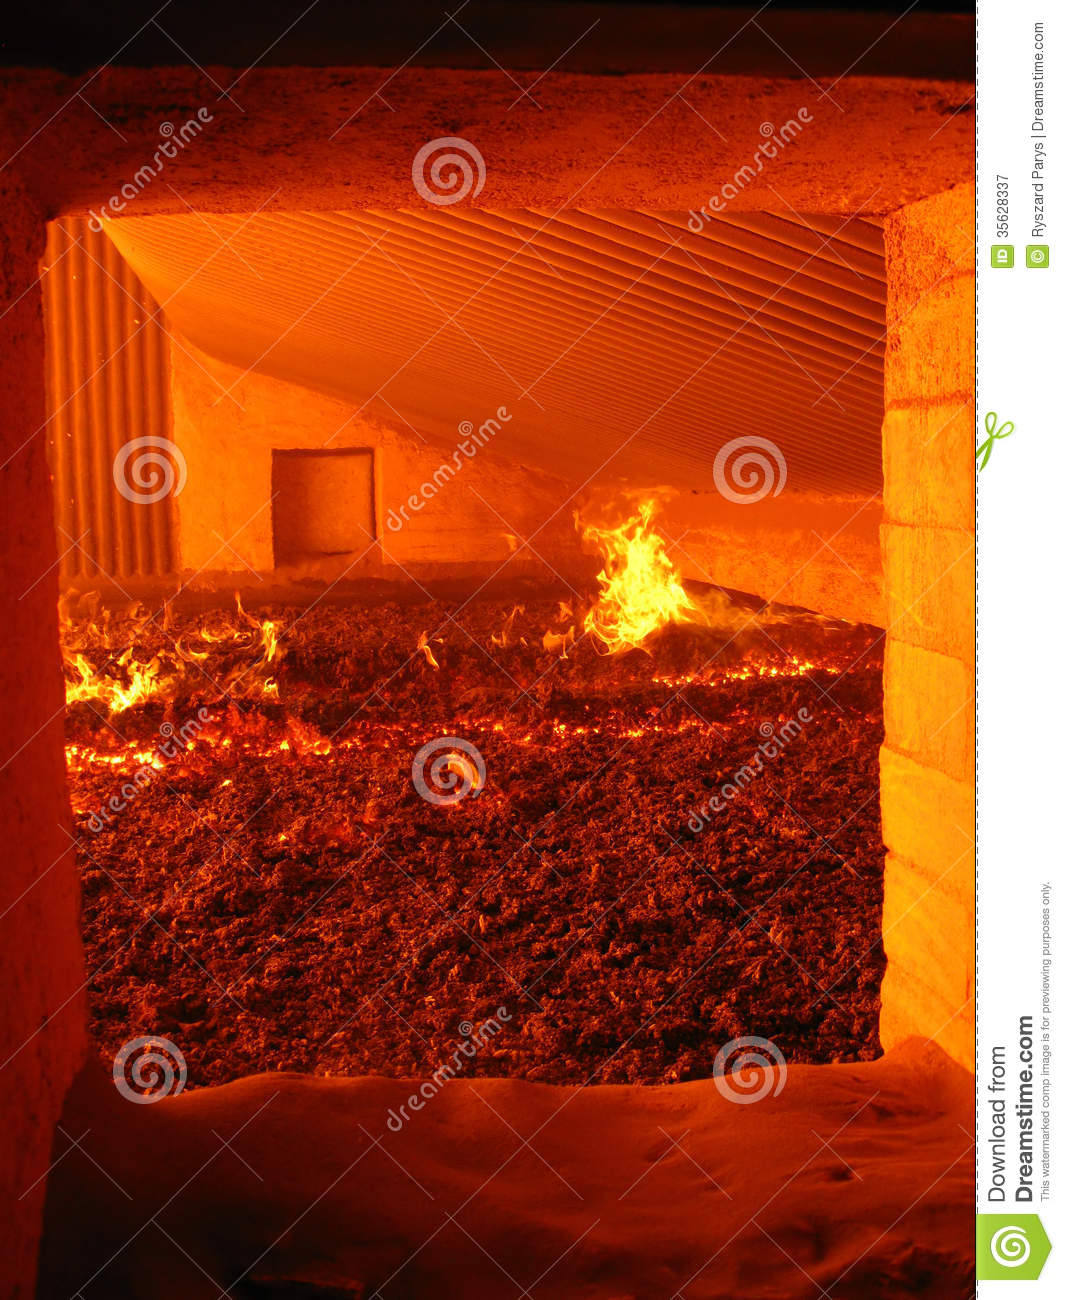 Fire In The Boiler Grate Stock Image Image Of Energy